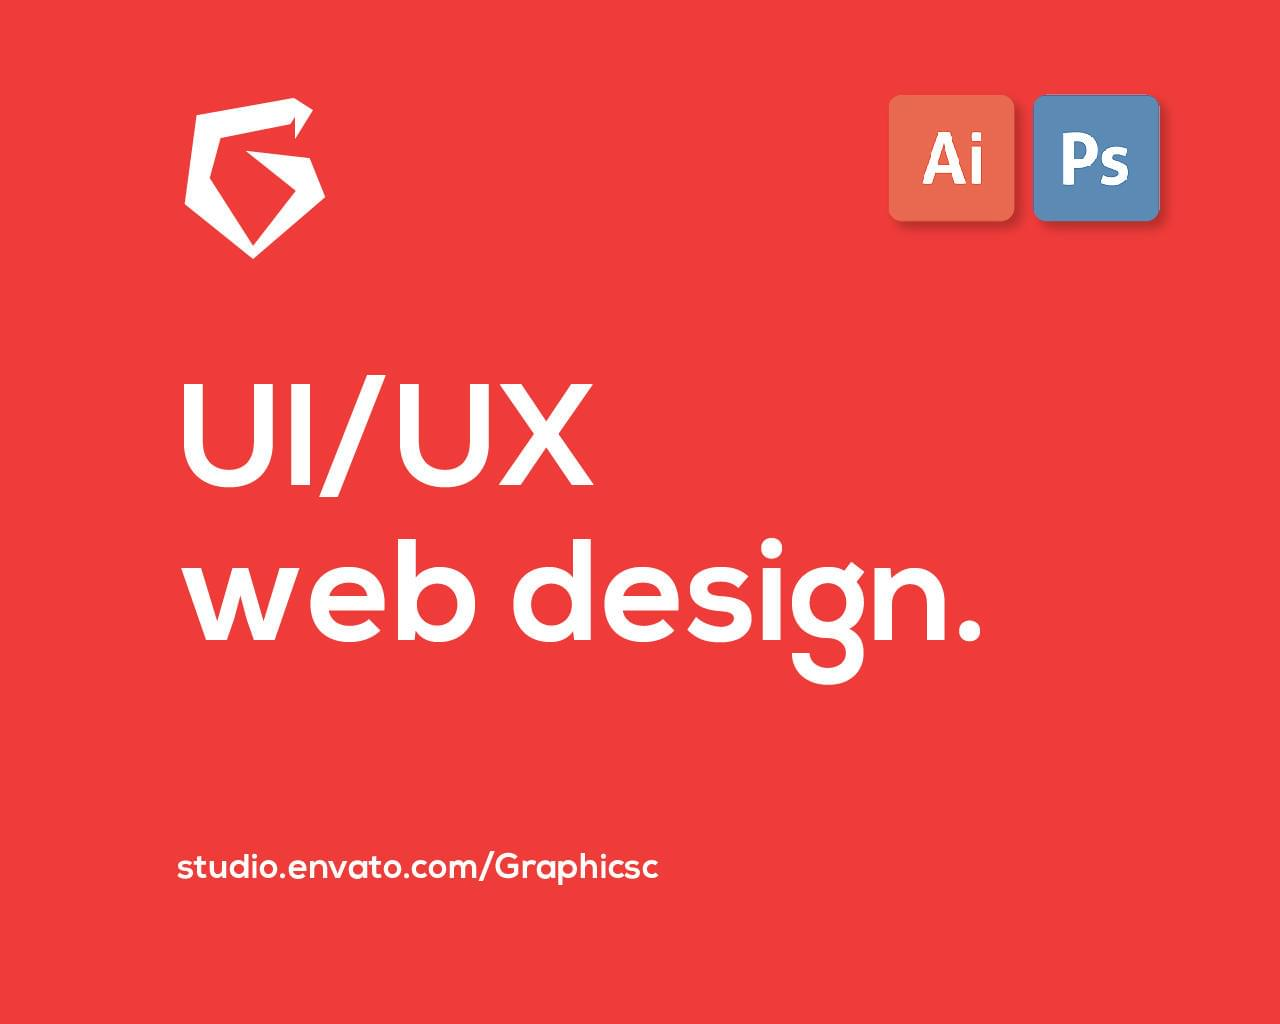 UI/UX Premium Web Application Design by Graphicsc - 115870